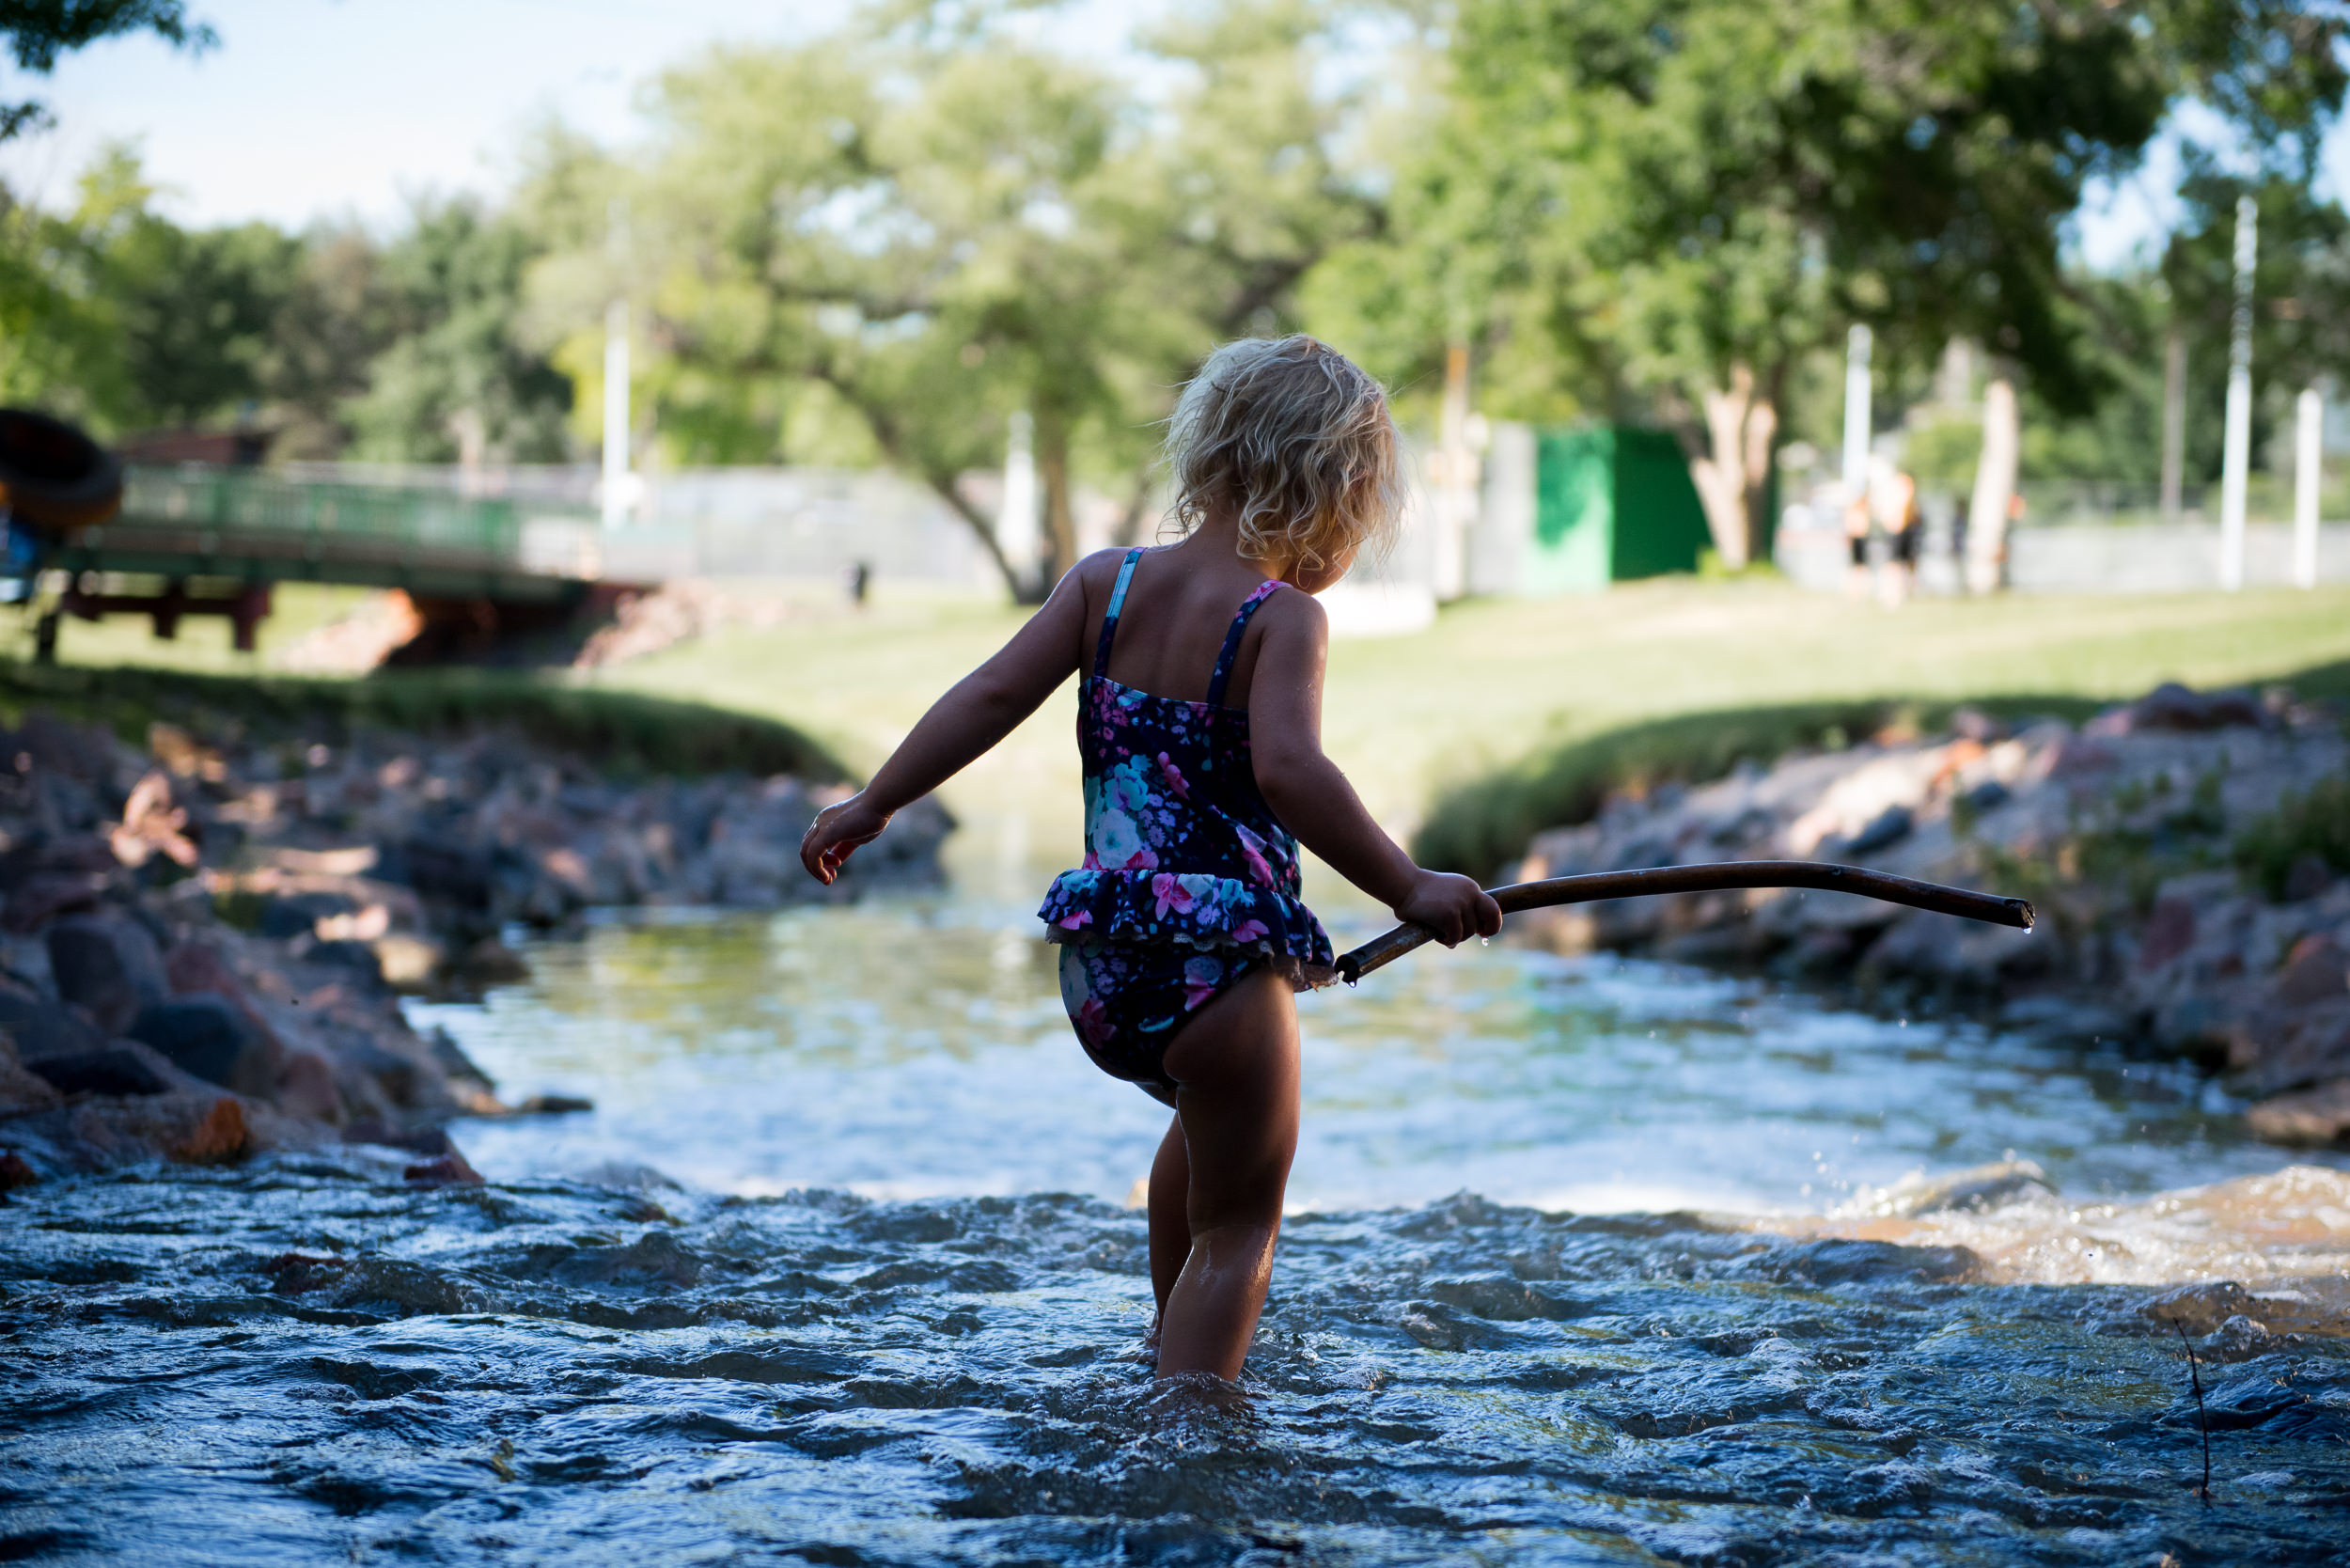 Blog - The Pen & Camera - Molly Rees Photo - Documentary Childhood Photography - girl wading in stream at Belleview Park in Denver, Colorado by M. Menschel